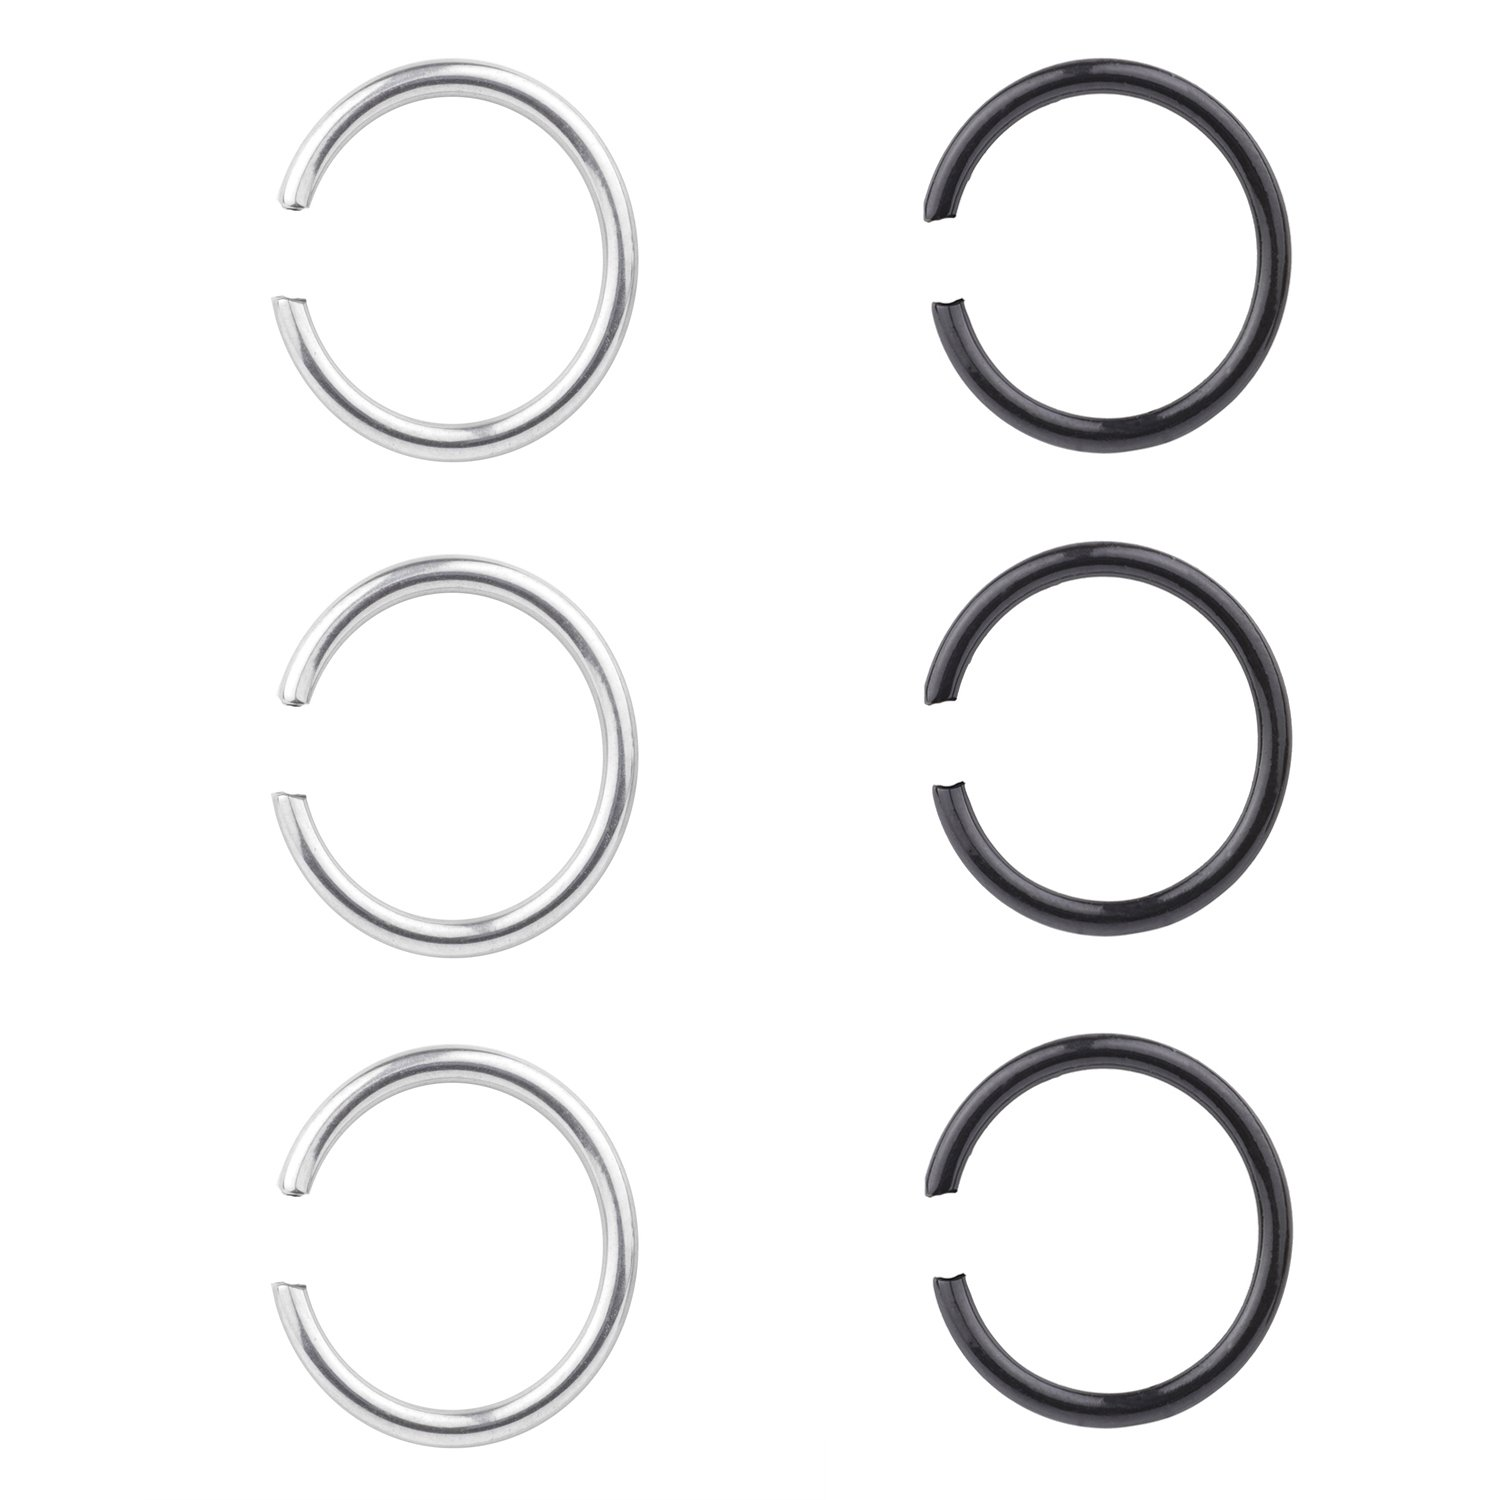 16G Surgical Stainless Nose Ring Non-Piercing Helix Cartilage Tragus Hoop Earrings 8mm